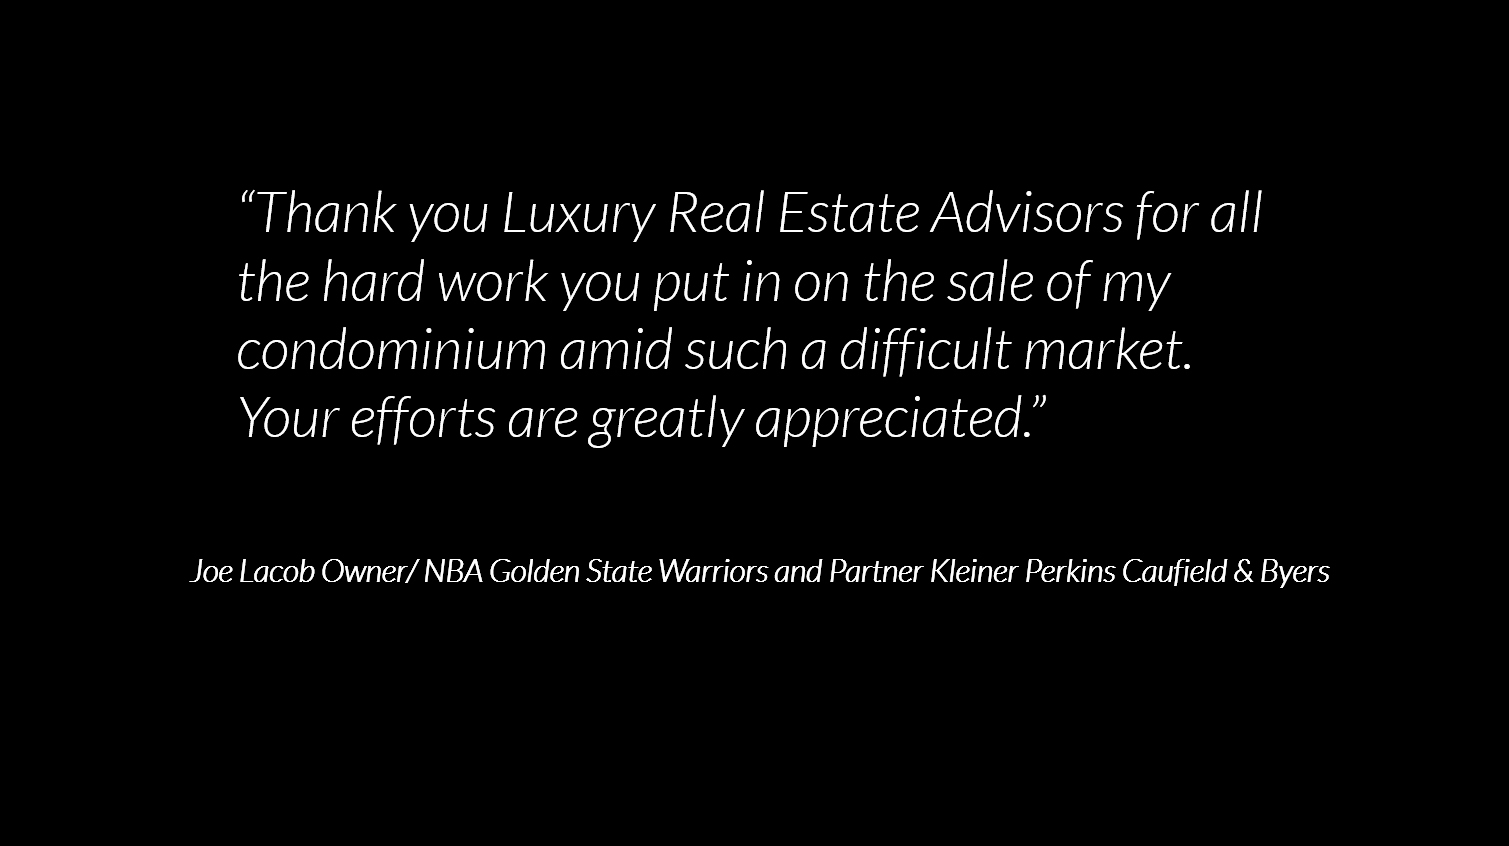 Luxury Real Estate Advisors Recommendation by Joe Lacob, owner of Golden State Warriors